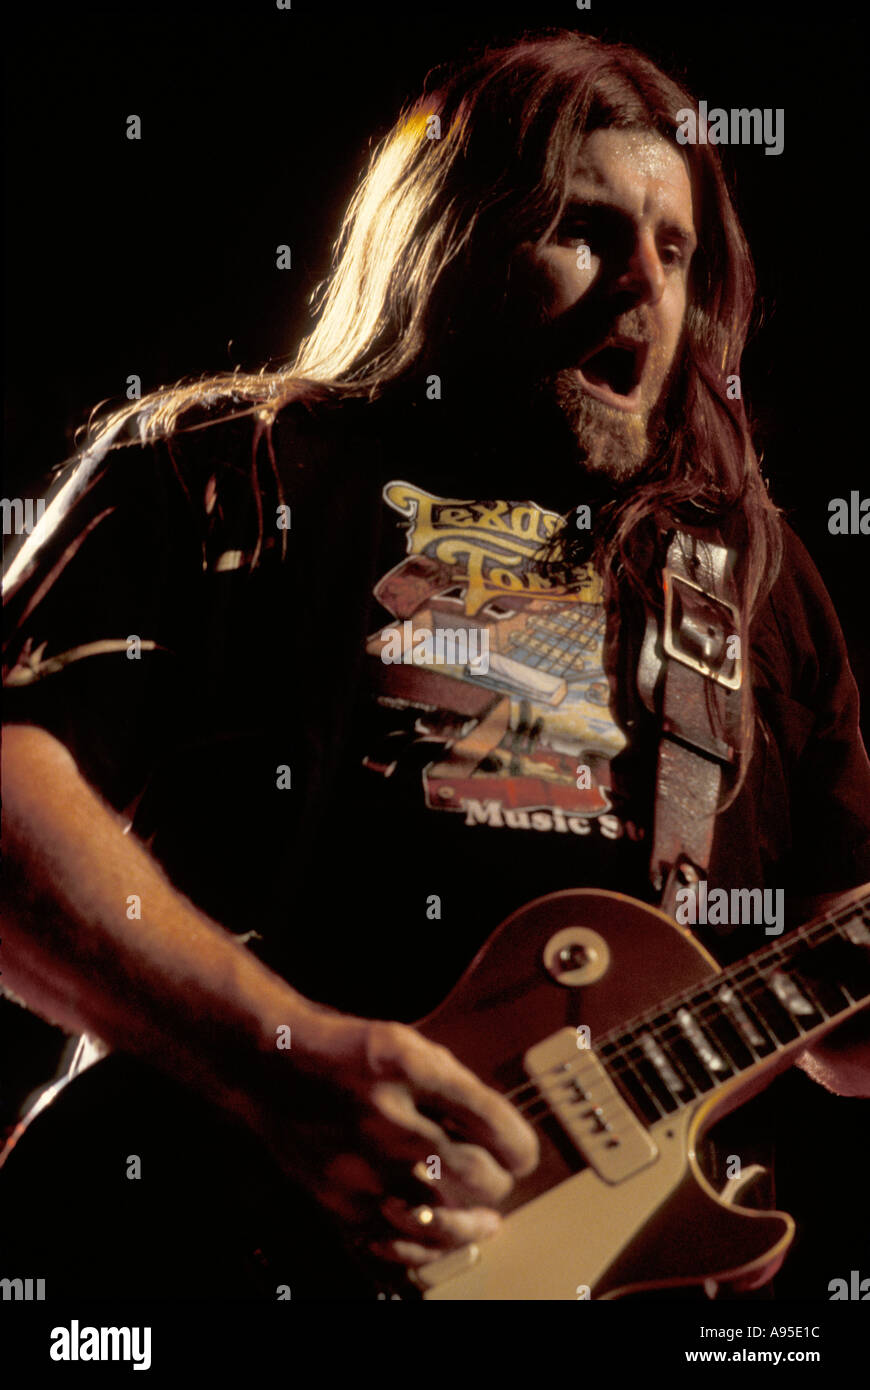 flirting with disaster molly hatchet bass cover photo free images online